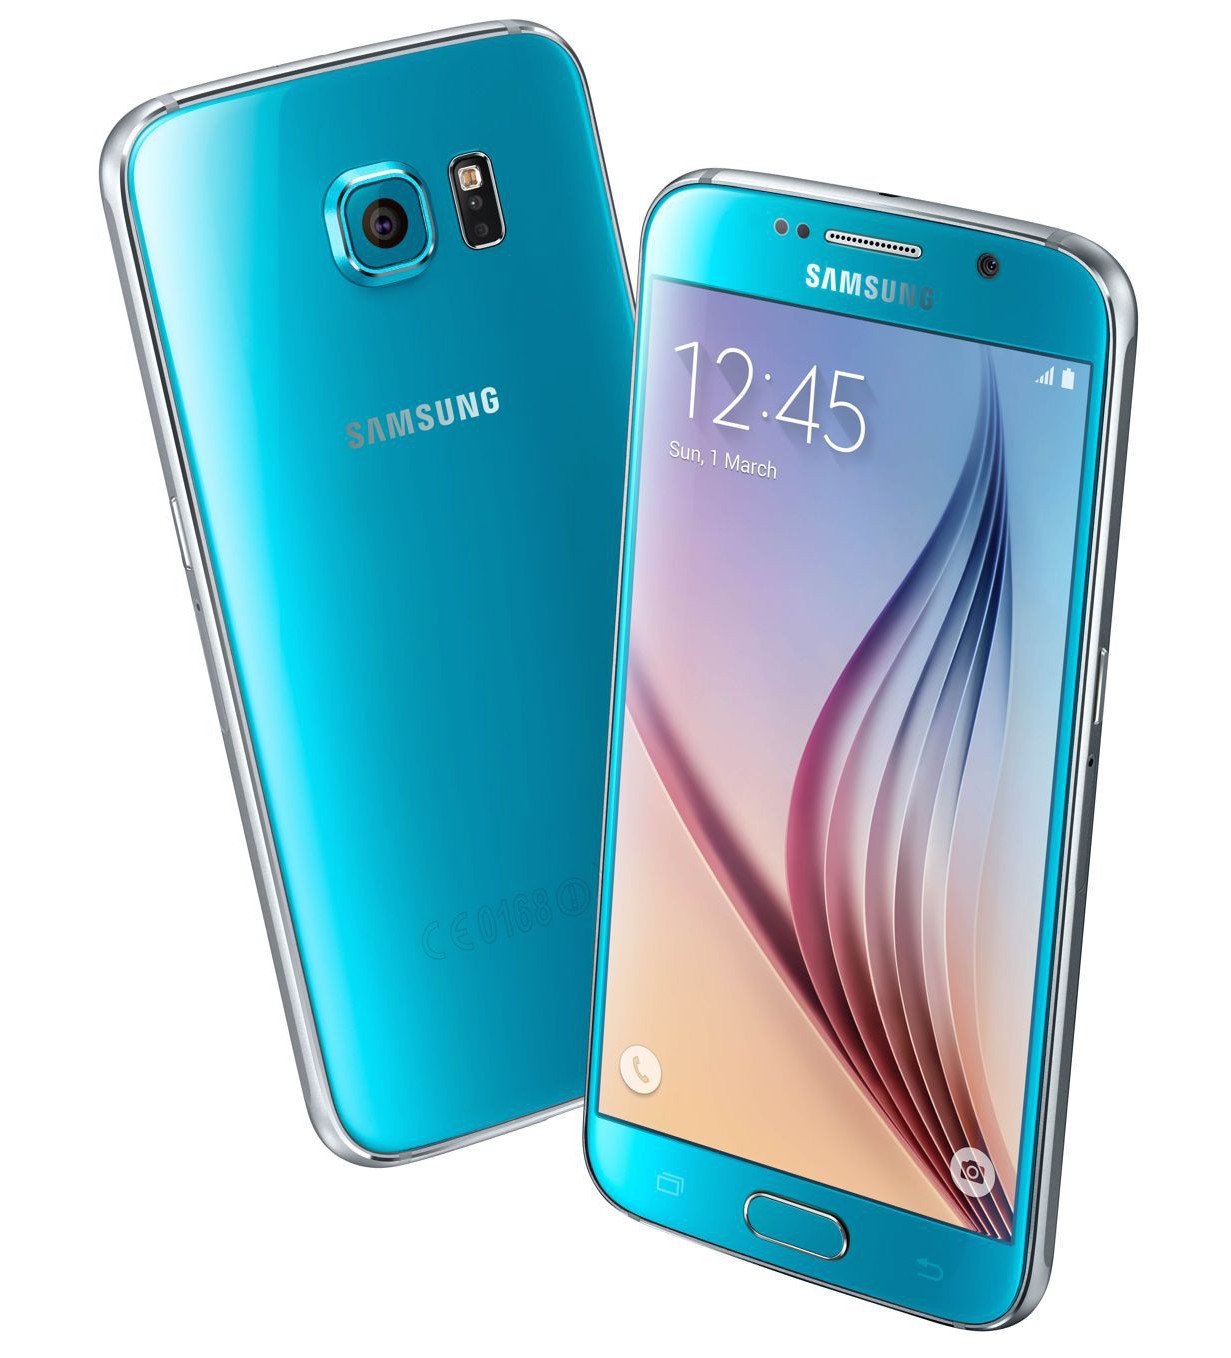 Samsung Galaxy S6 Apparently Found with QHD Screen